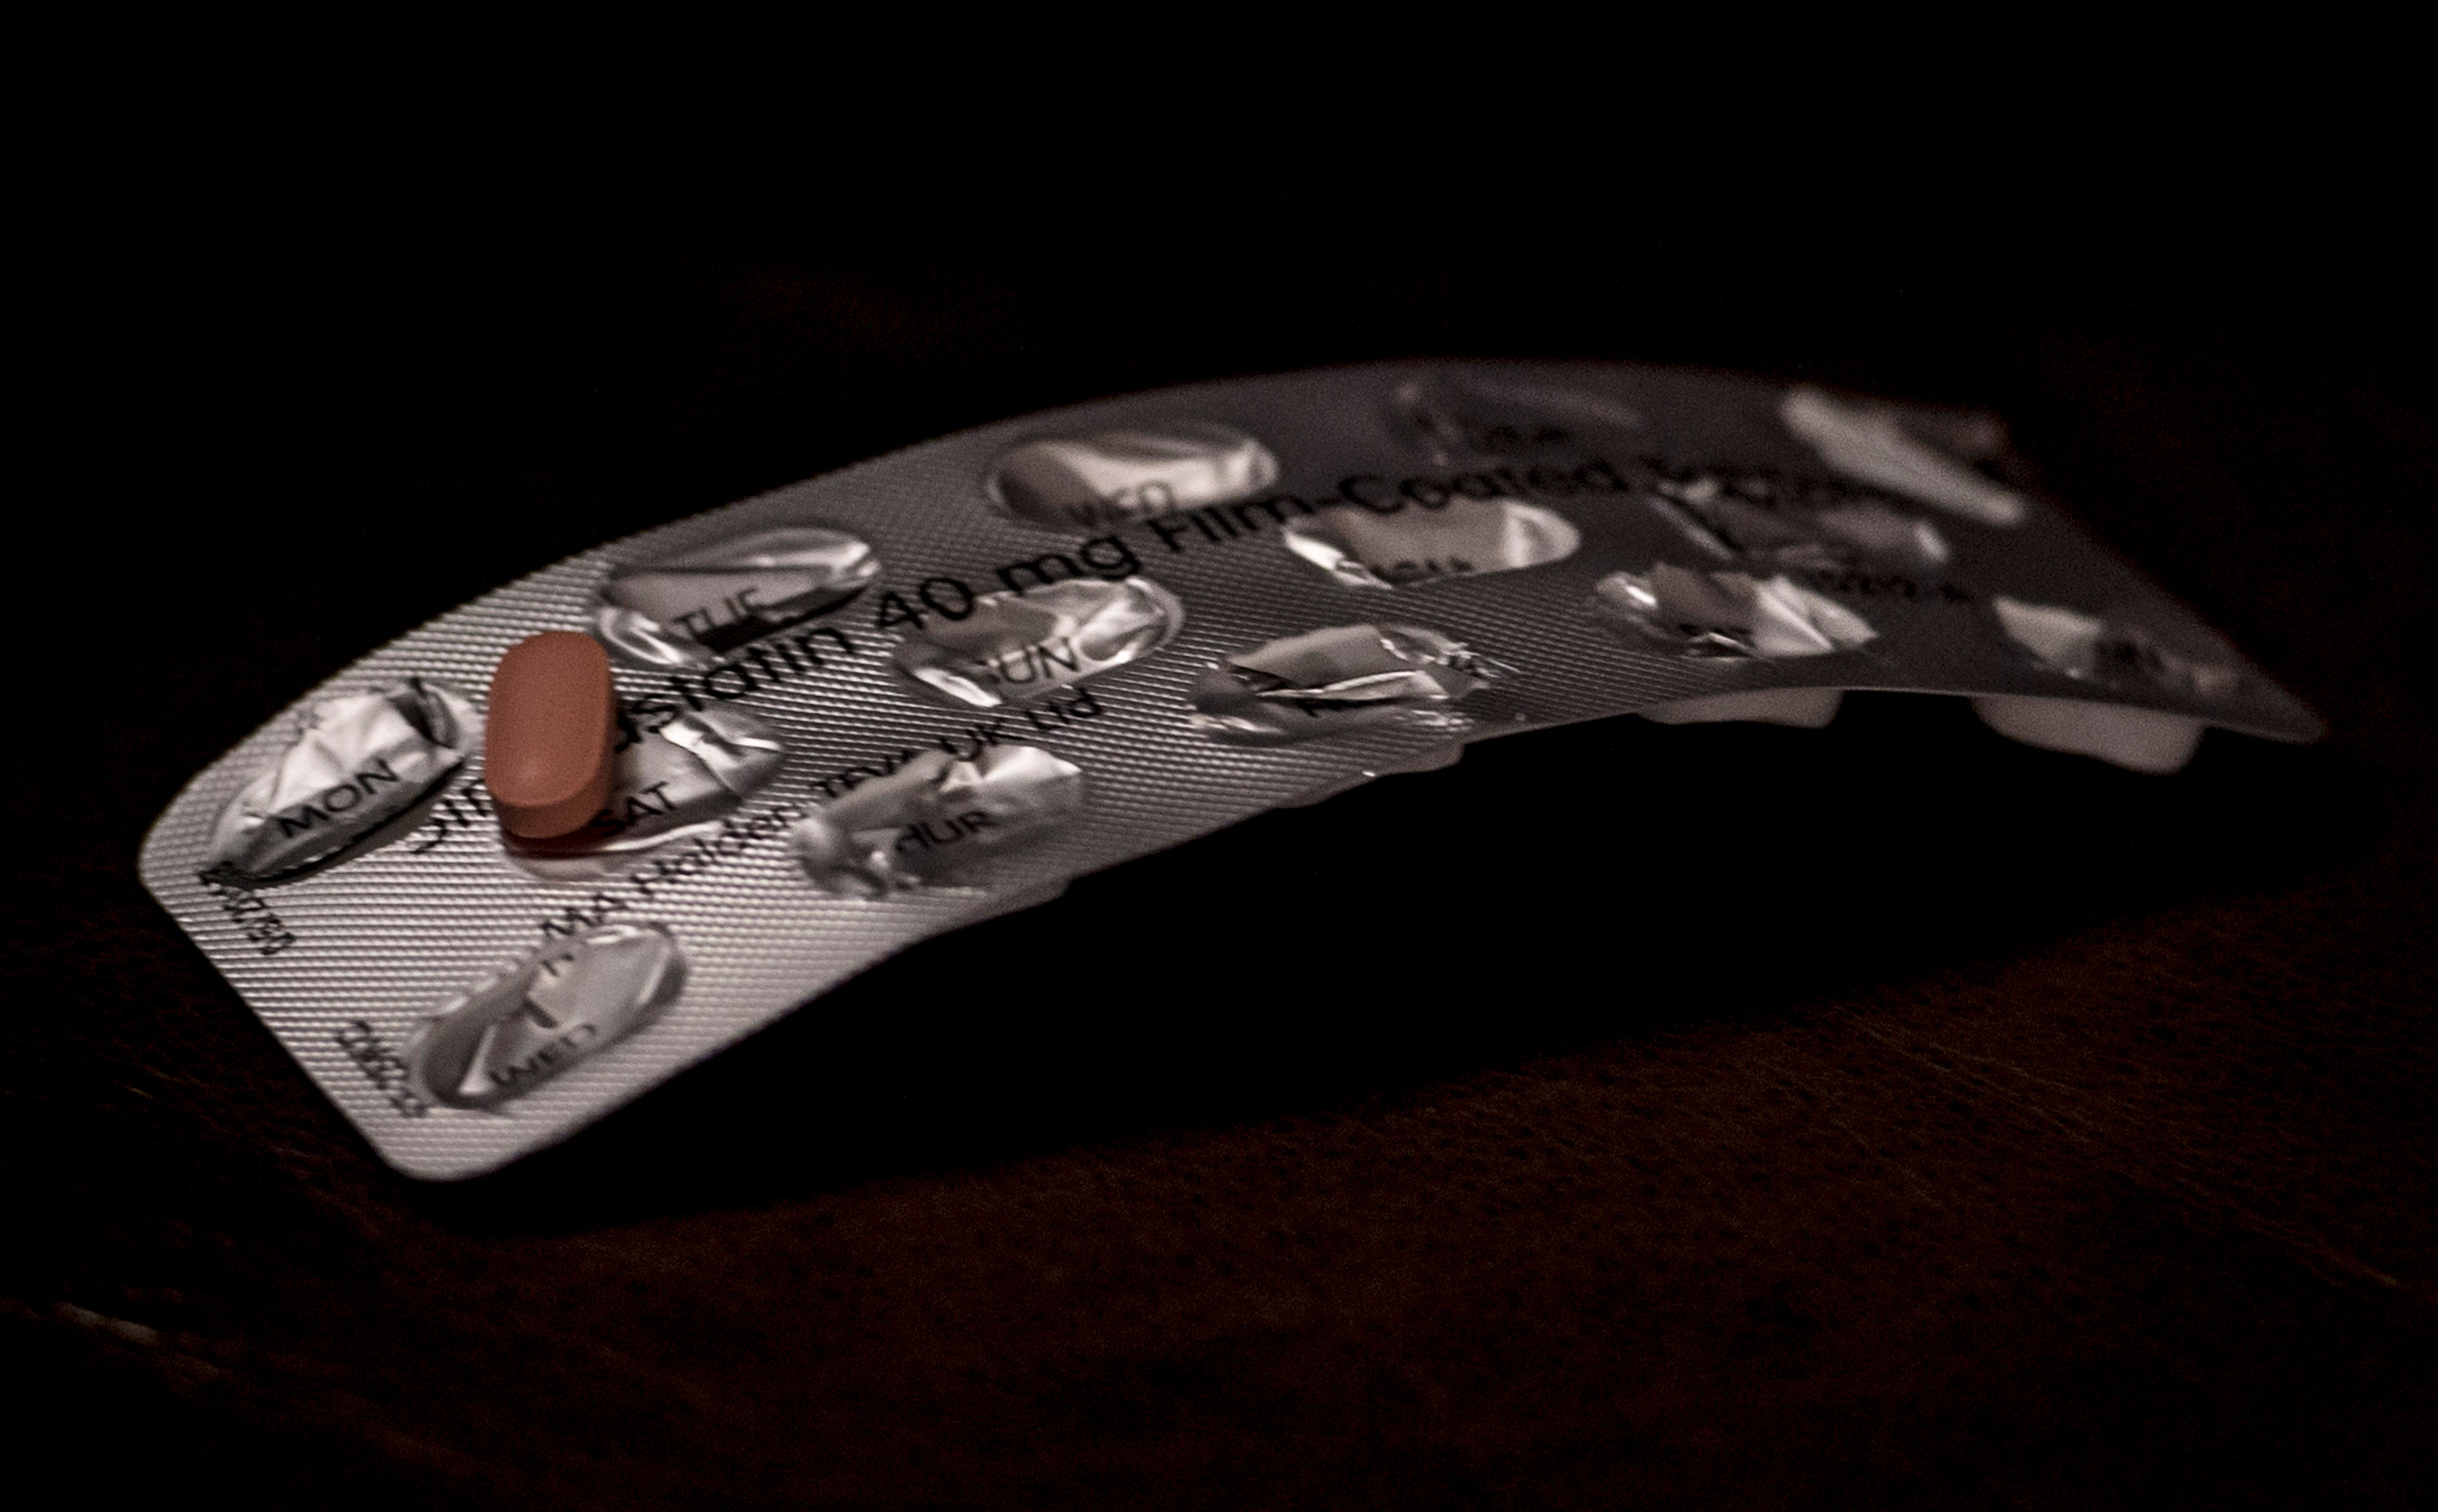 Study finds statins reduce risk of stroke or heart attack